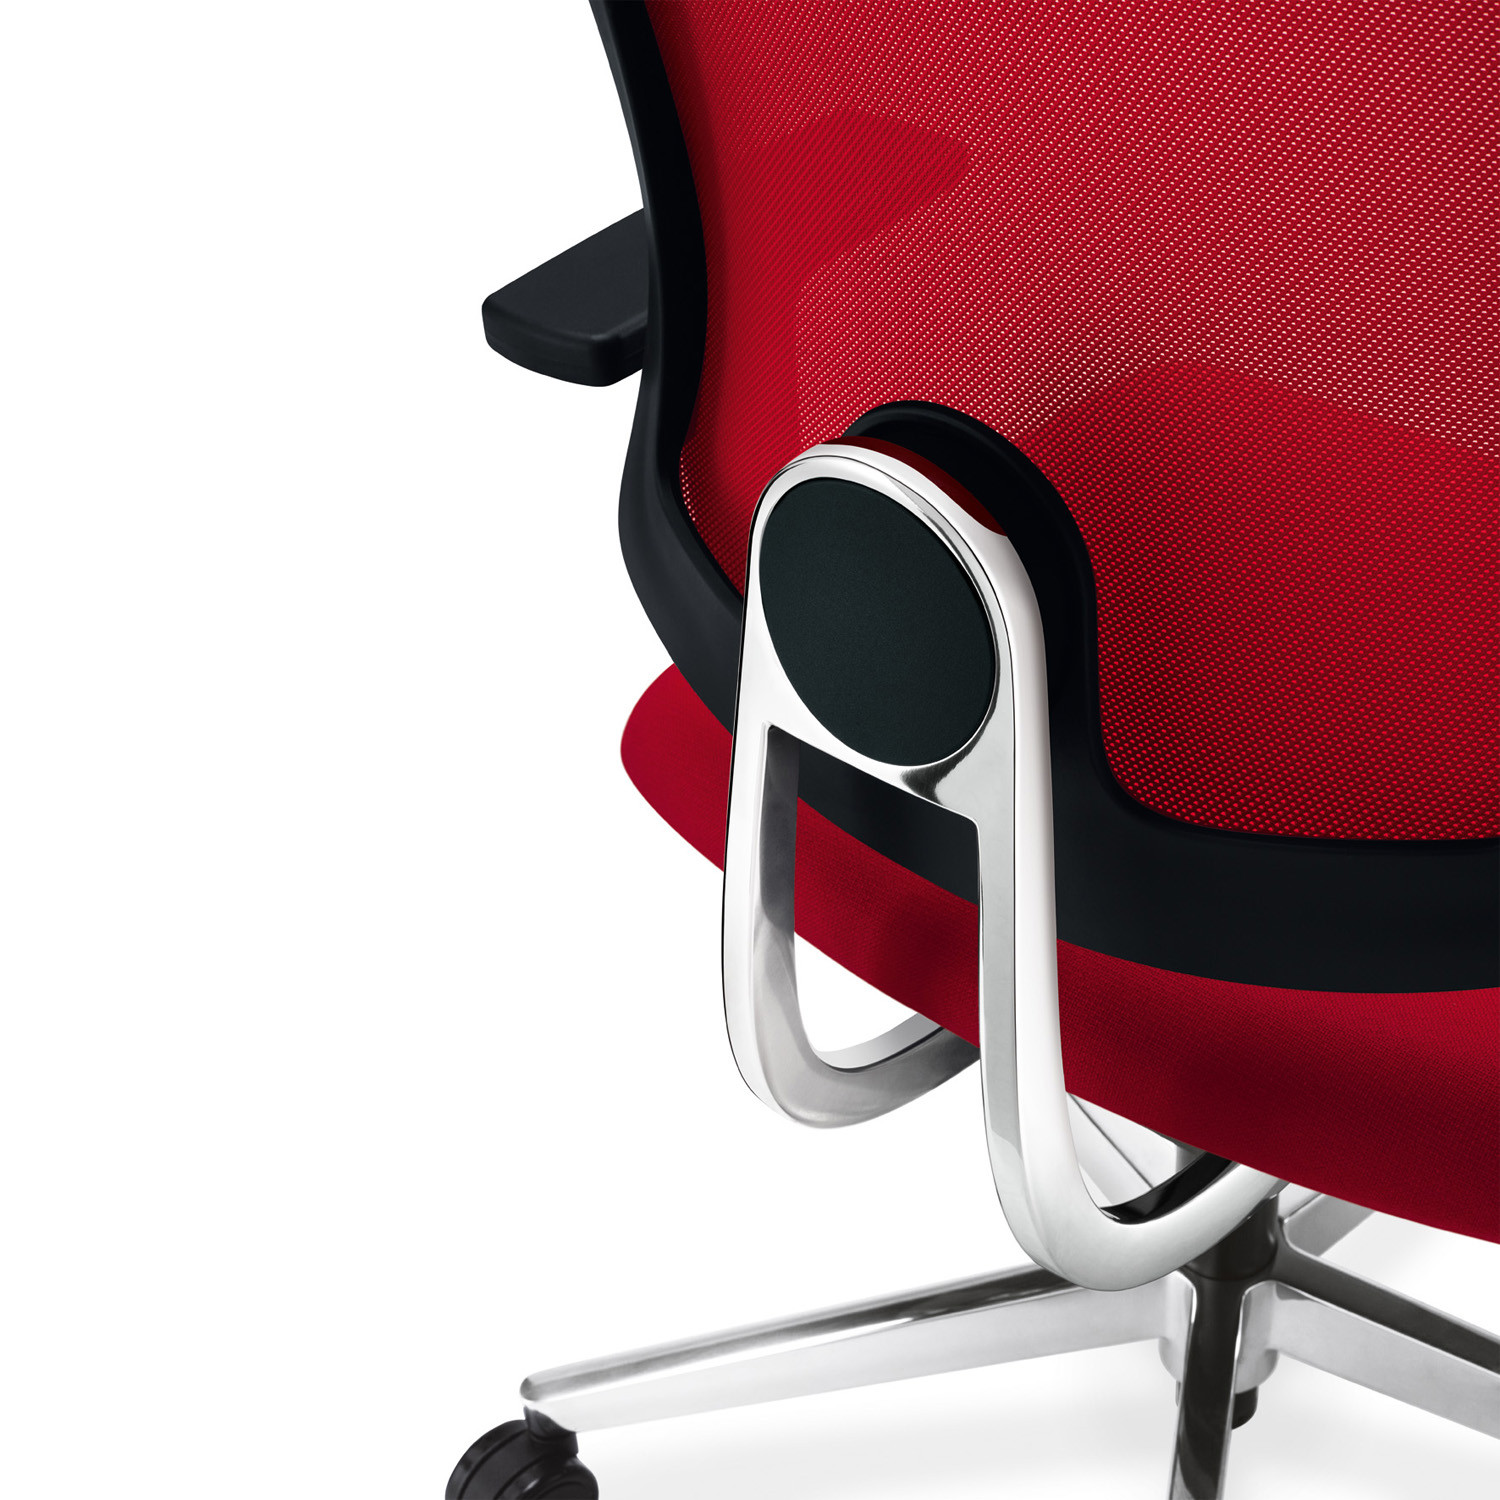 Black Dot Net Executive Chair lumbar support detail